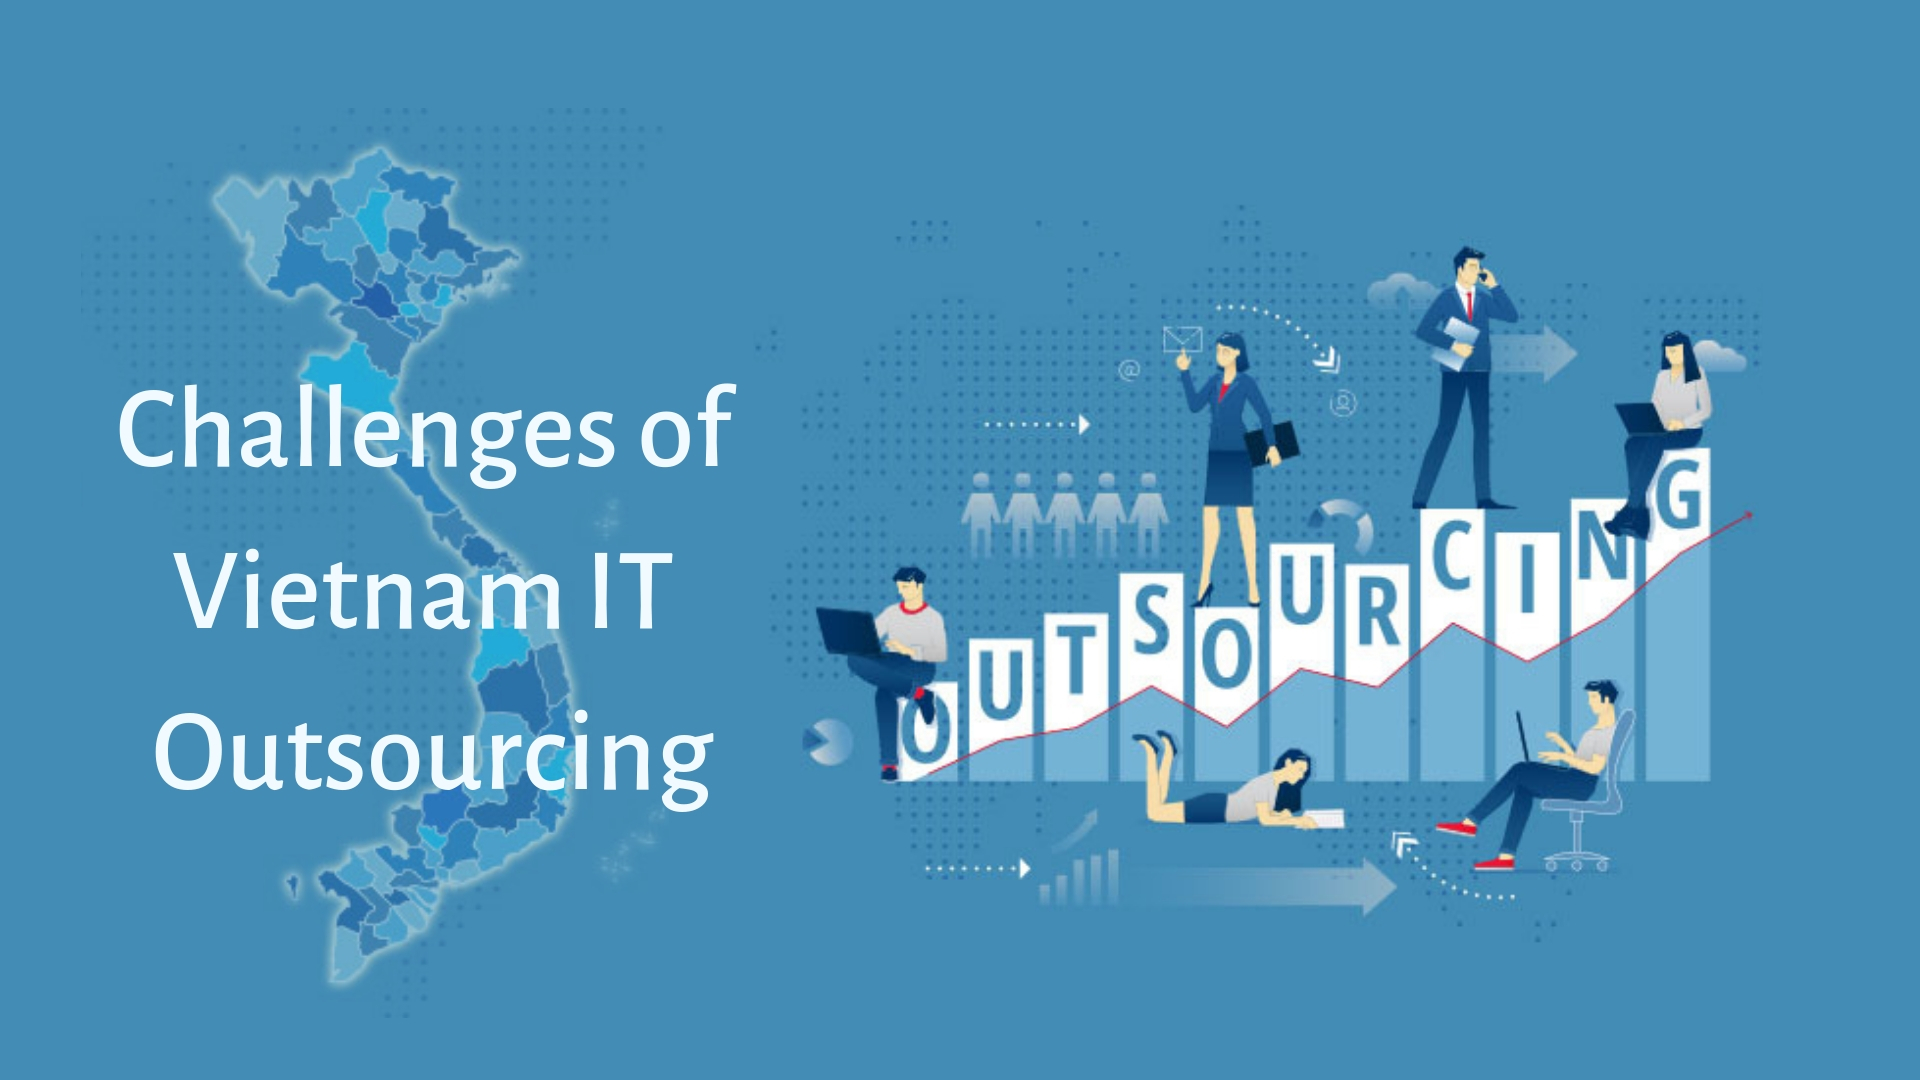 What are the challenges of IT outsourcing that Vietnam has to deal with?